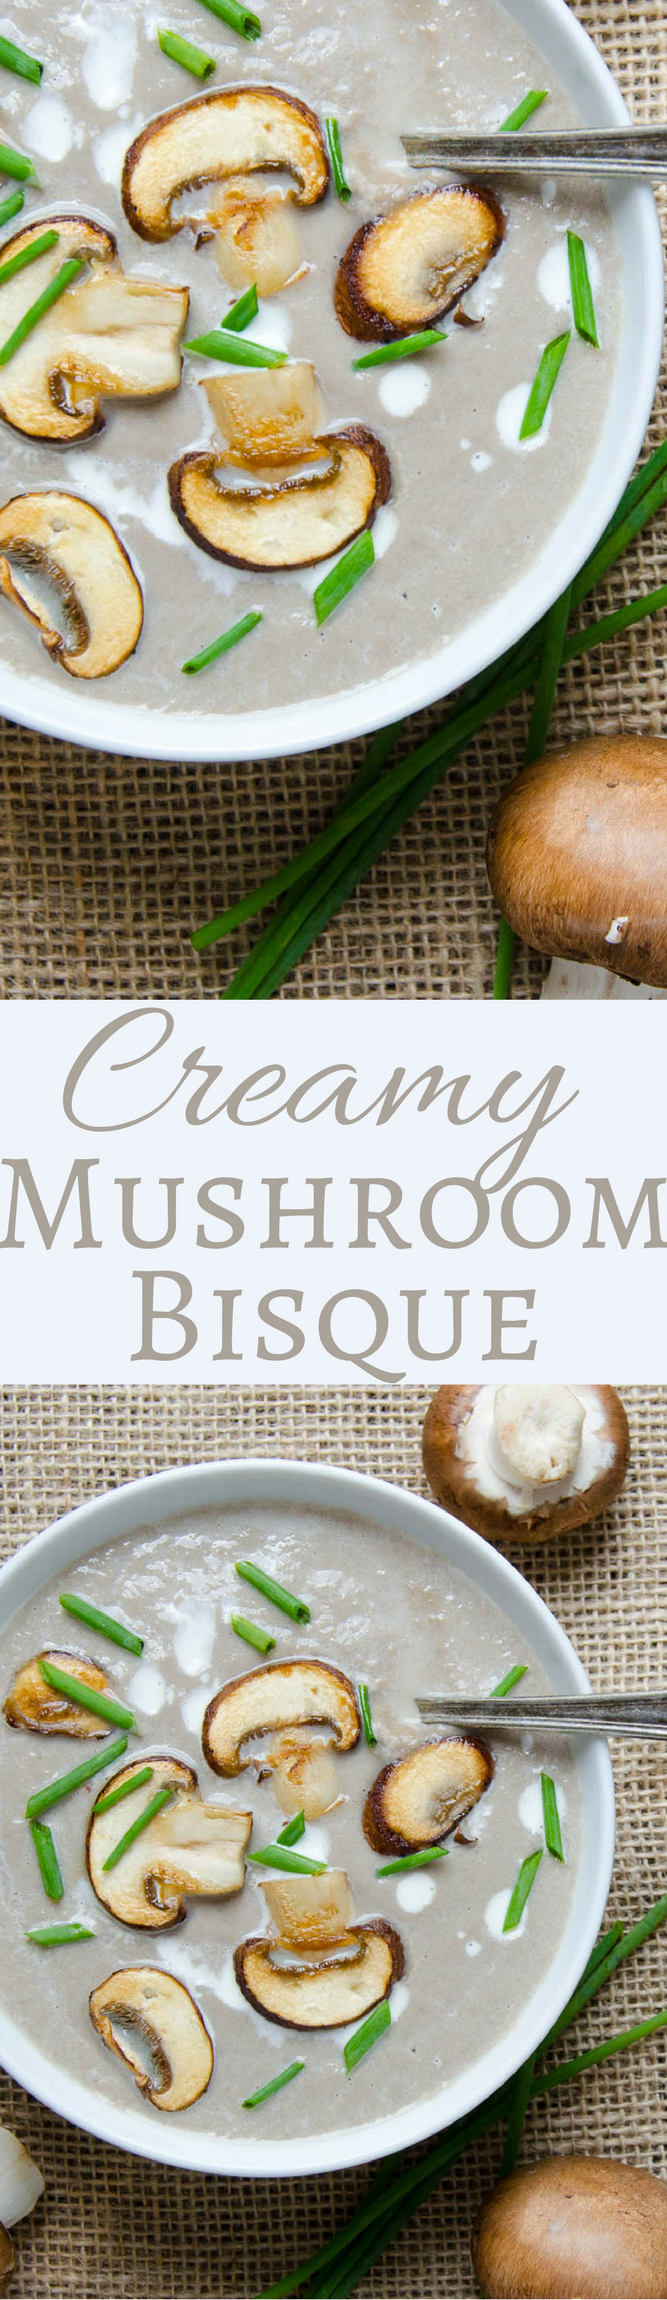 Who needs Campbell's?  Homemade cream of mushroom soup is way better!  This Creamy Mushroom Bisque is ready in under an hour!